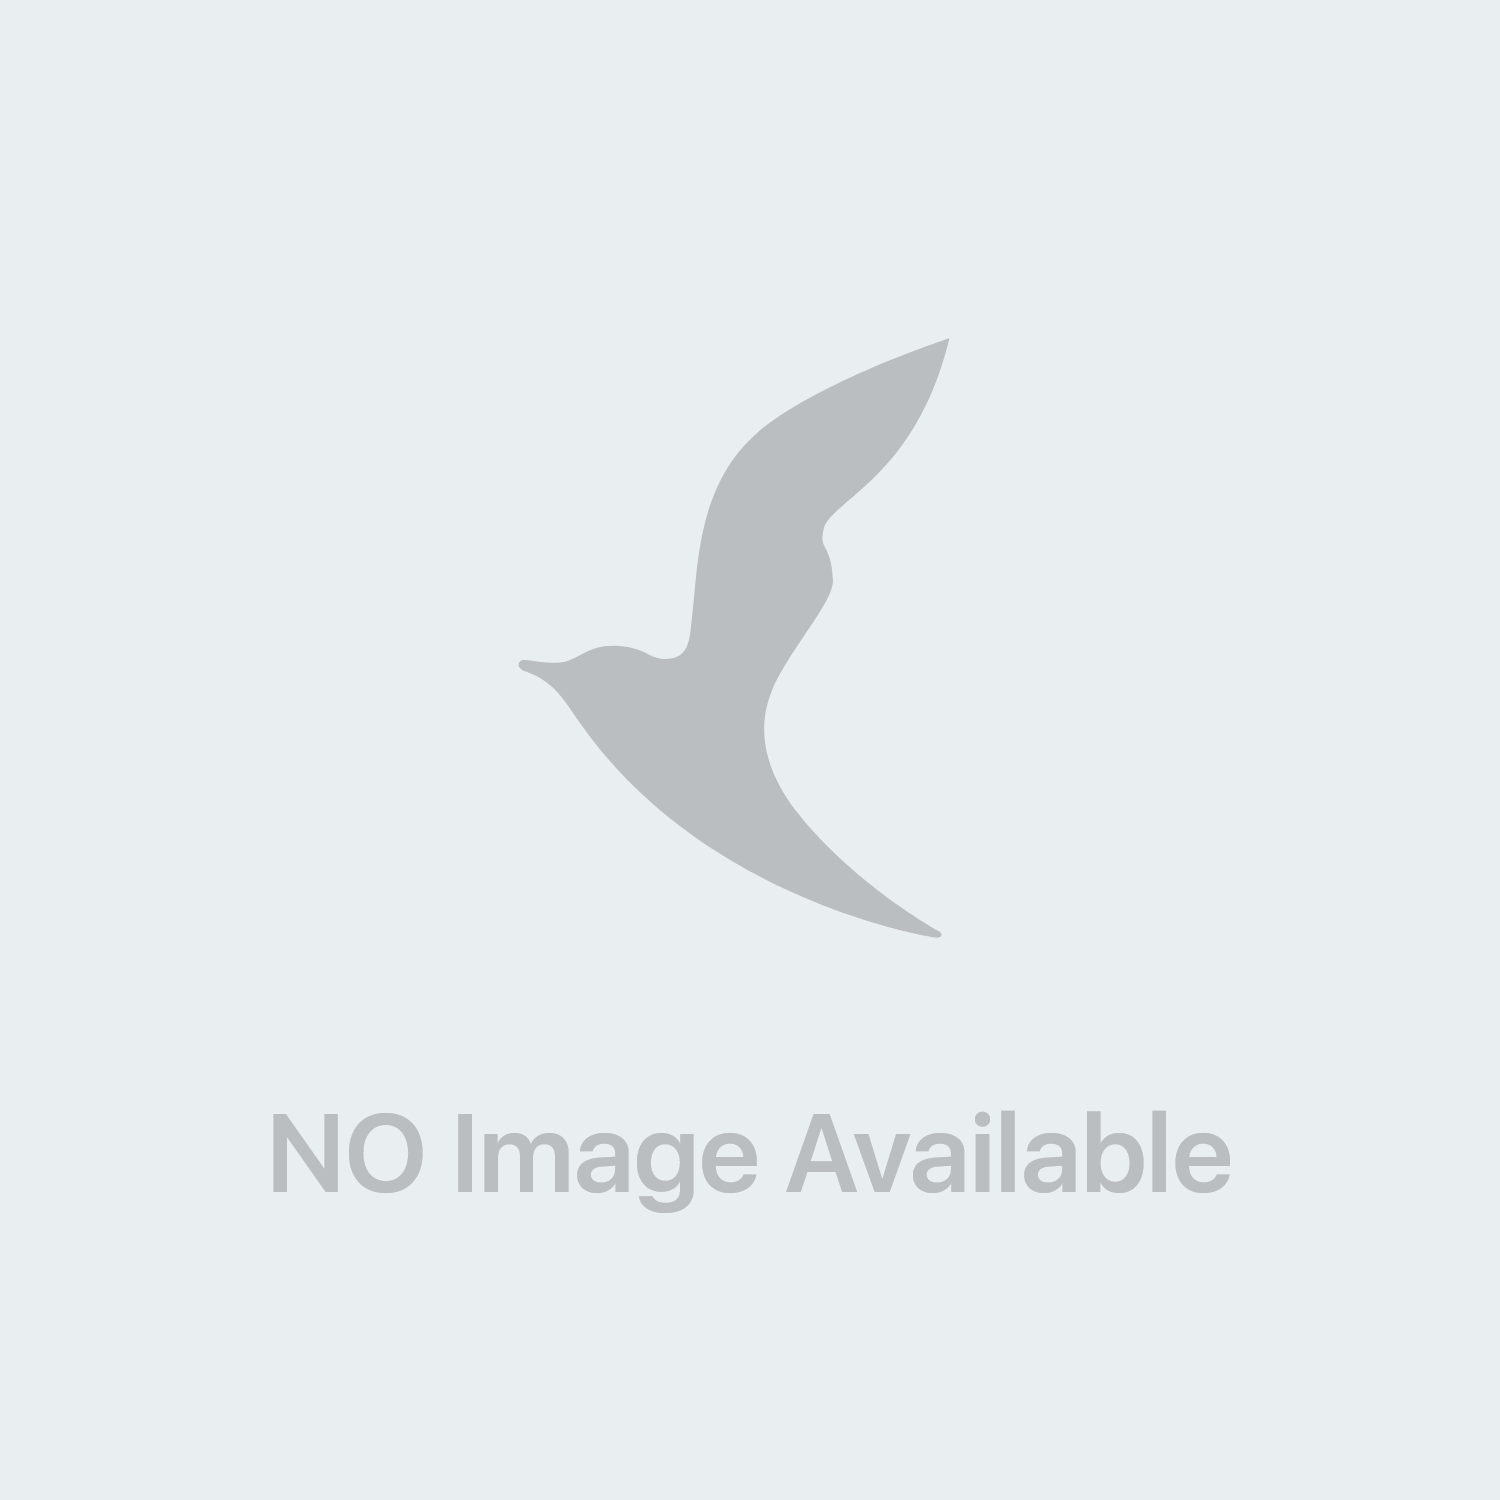 Ifenec 15 Ovuli Vaginali 50 mg